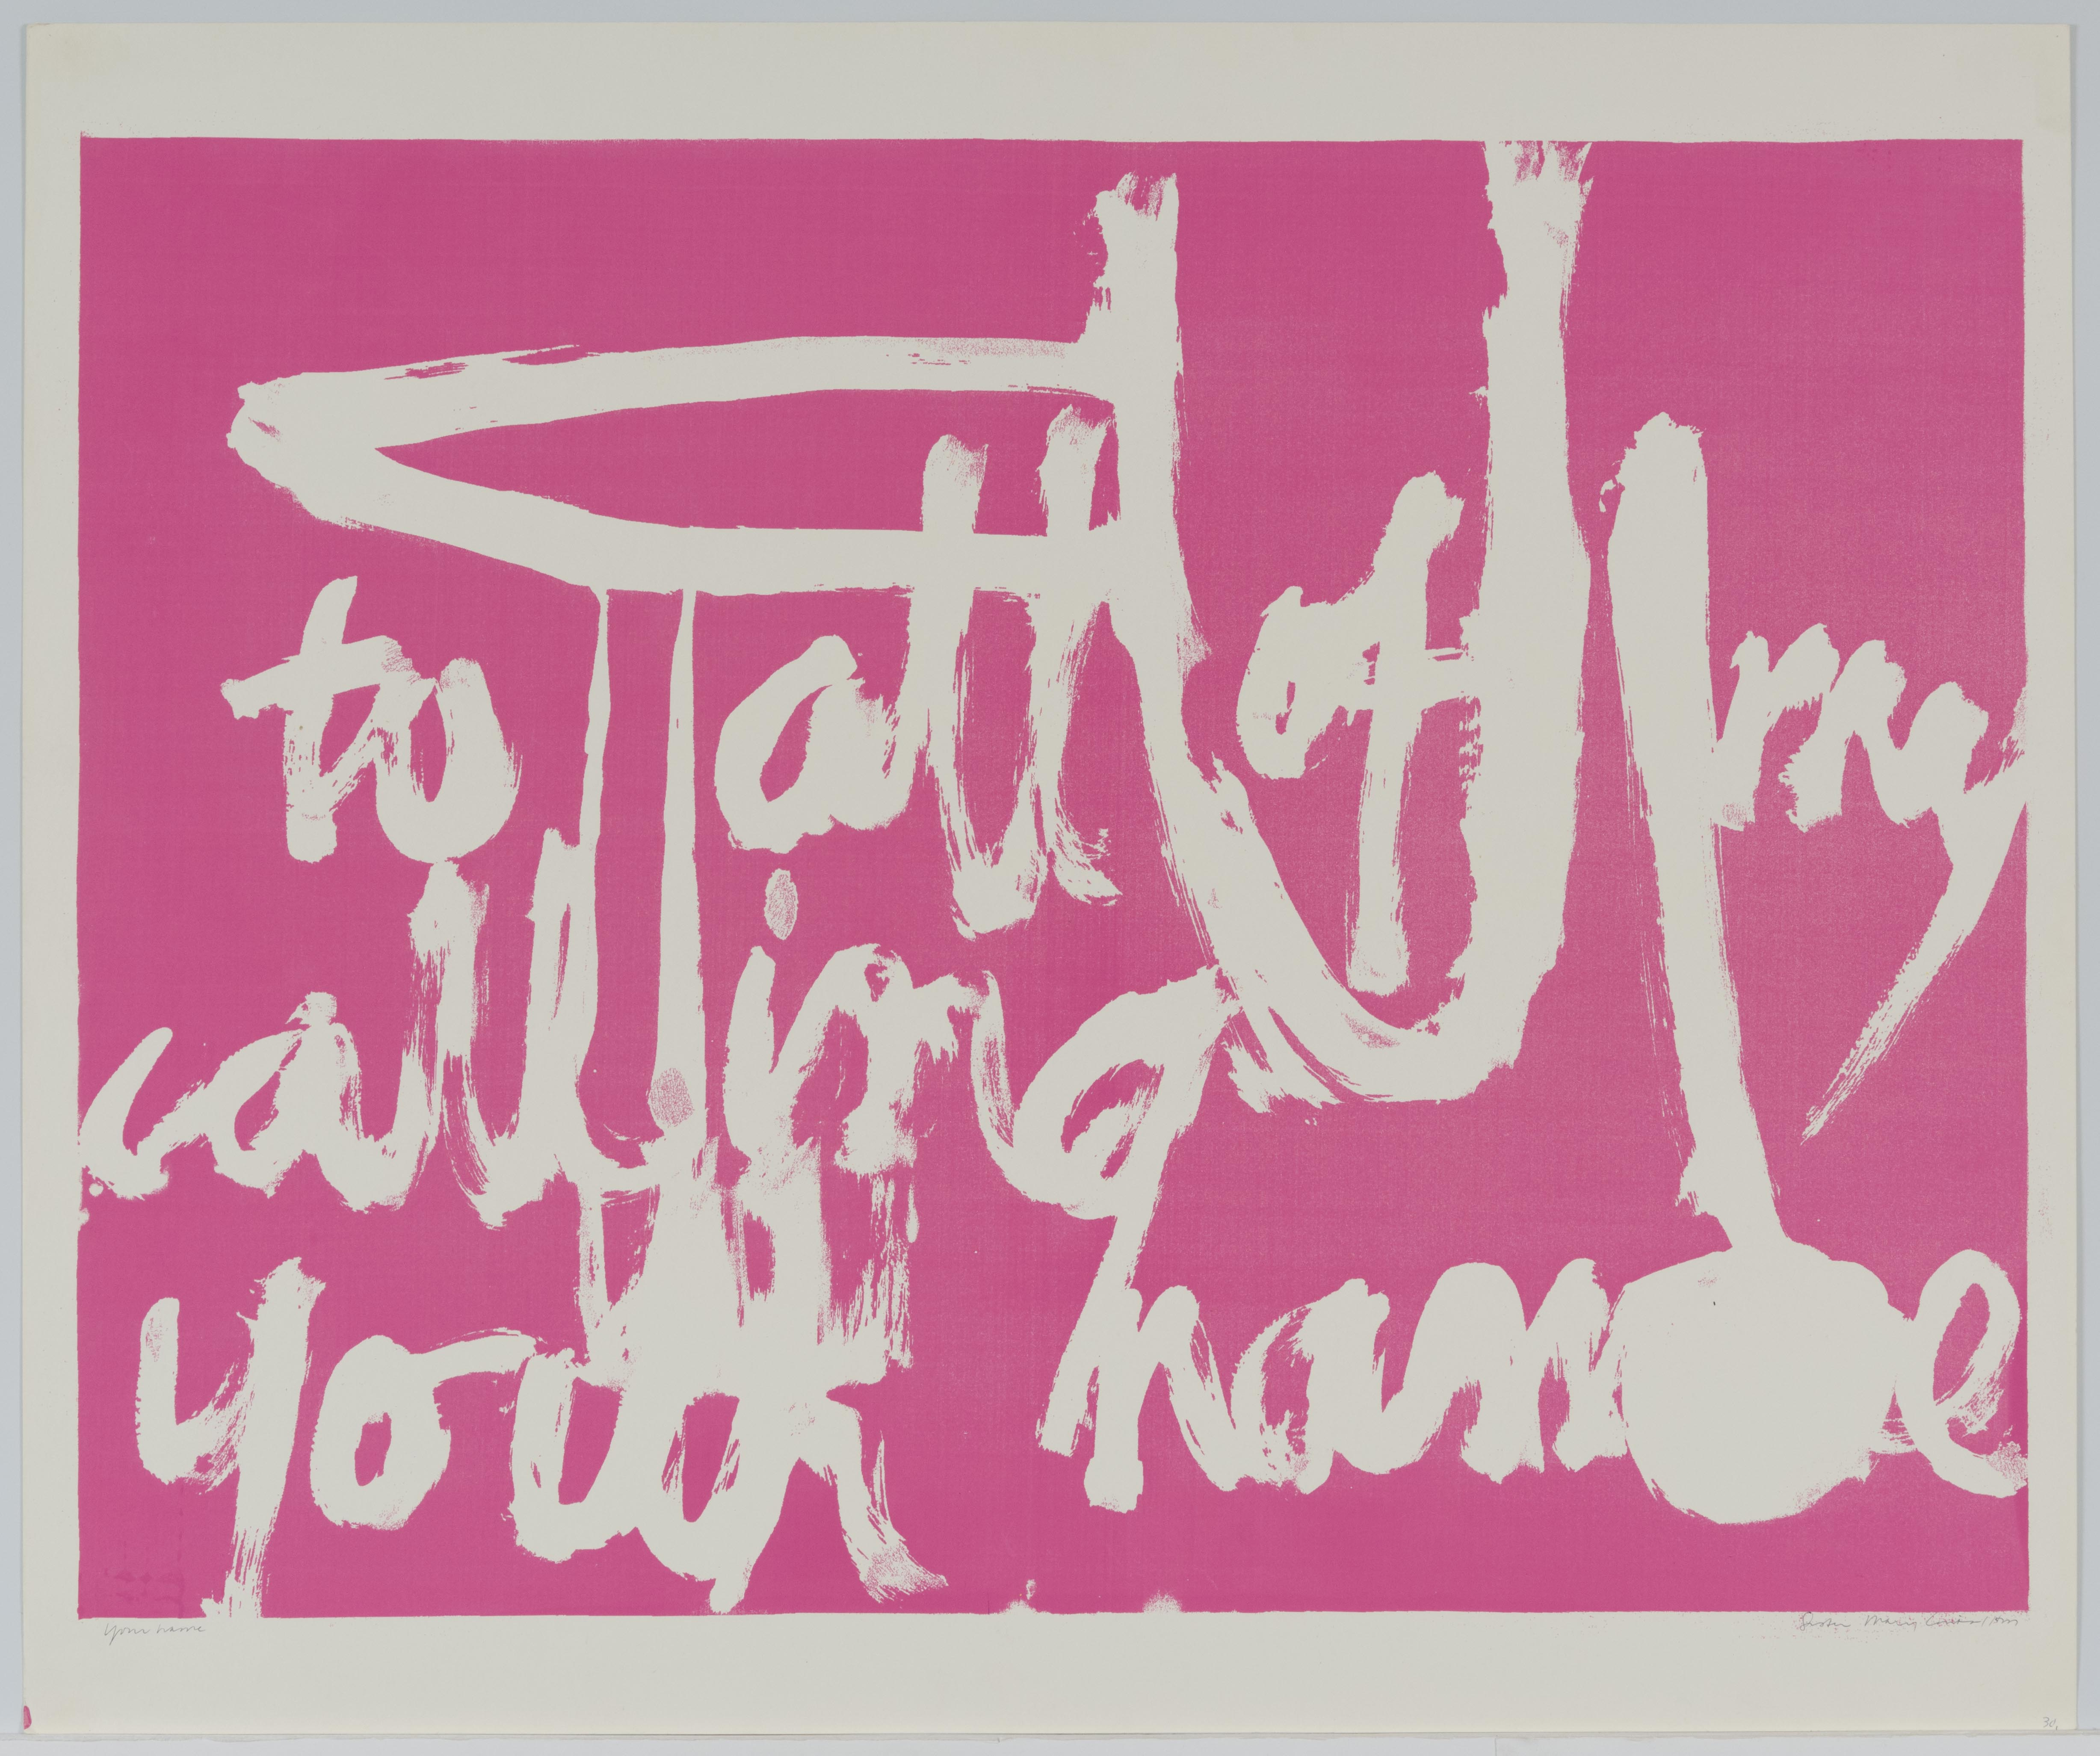 Corita Kent, to all of my calling your name, 1962